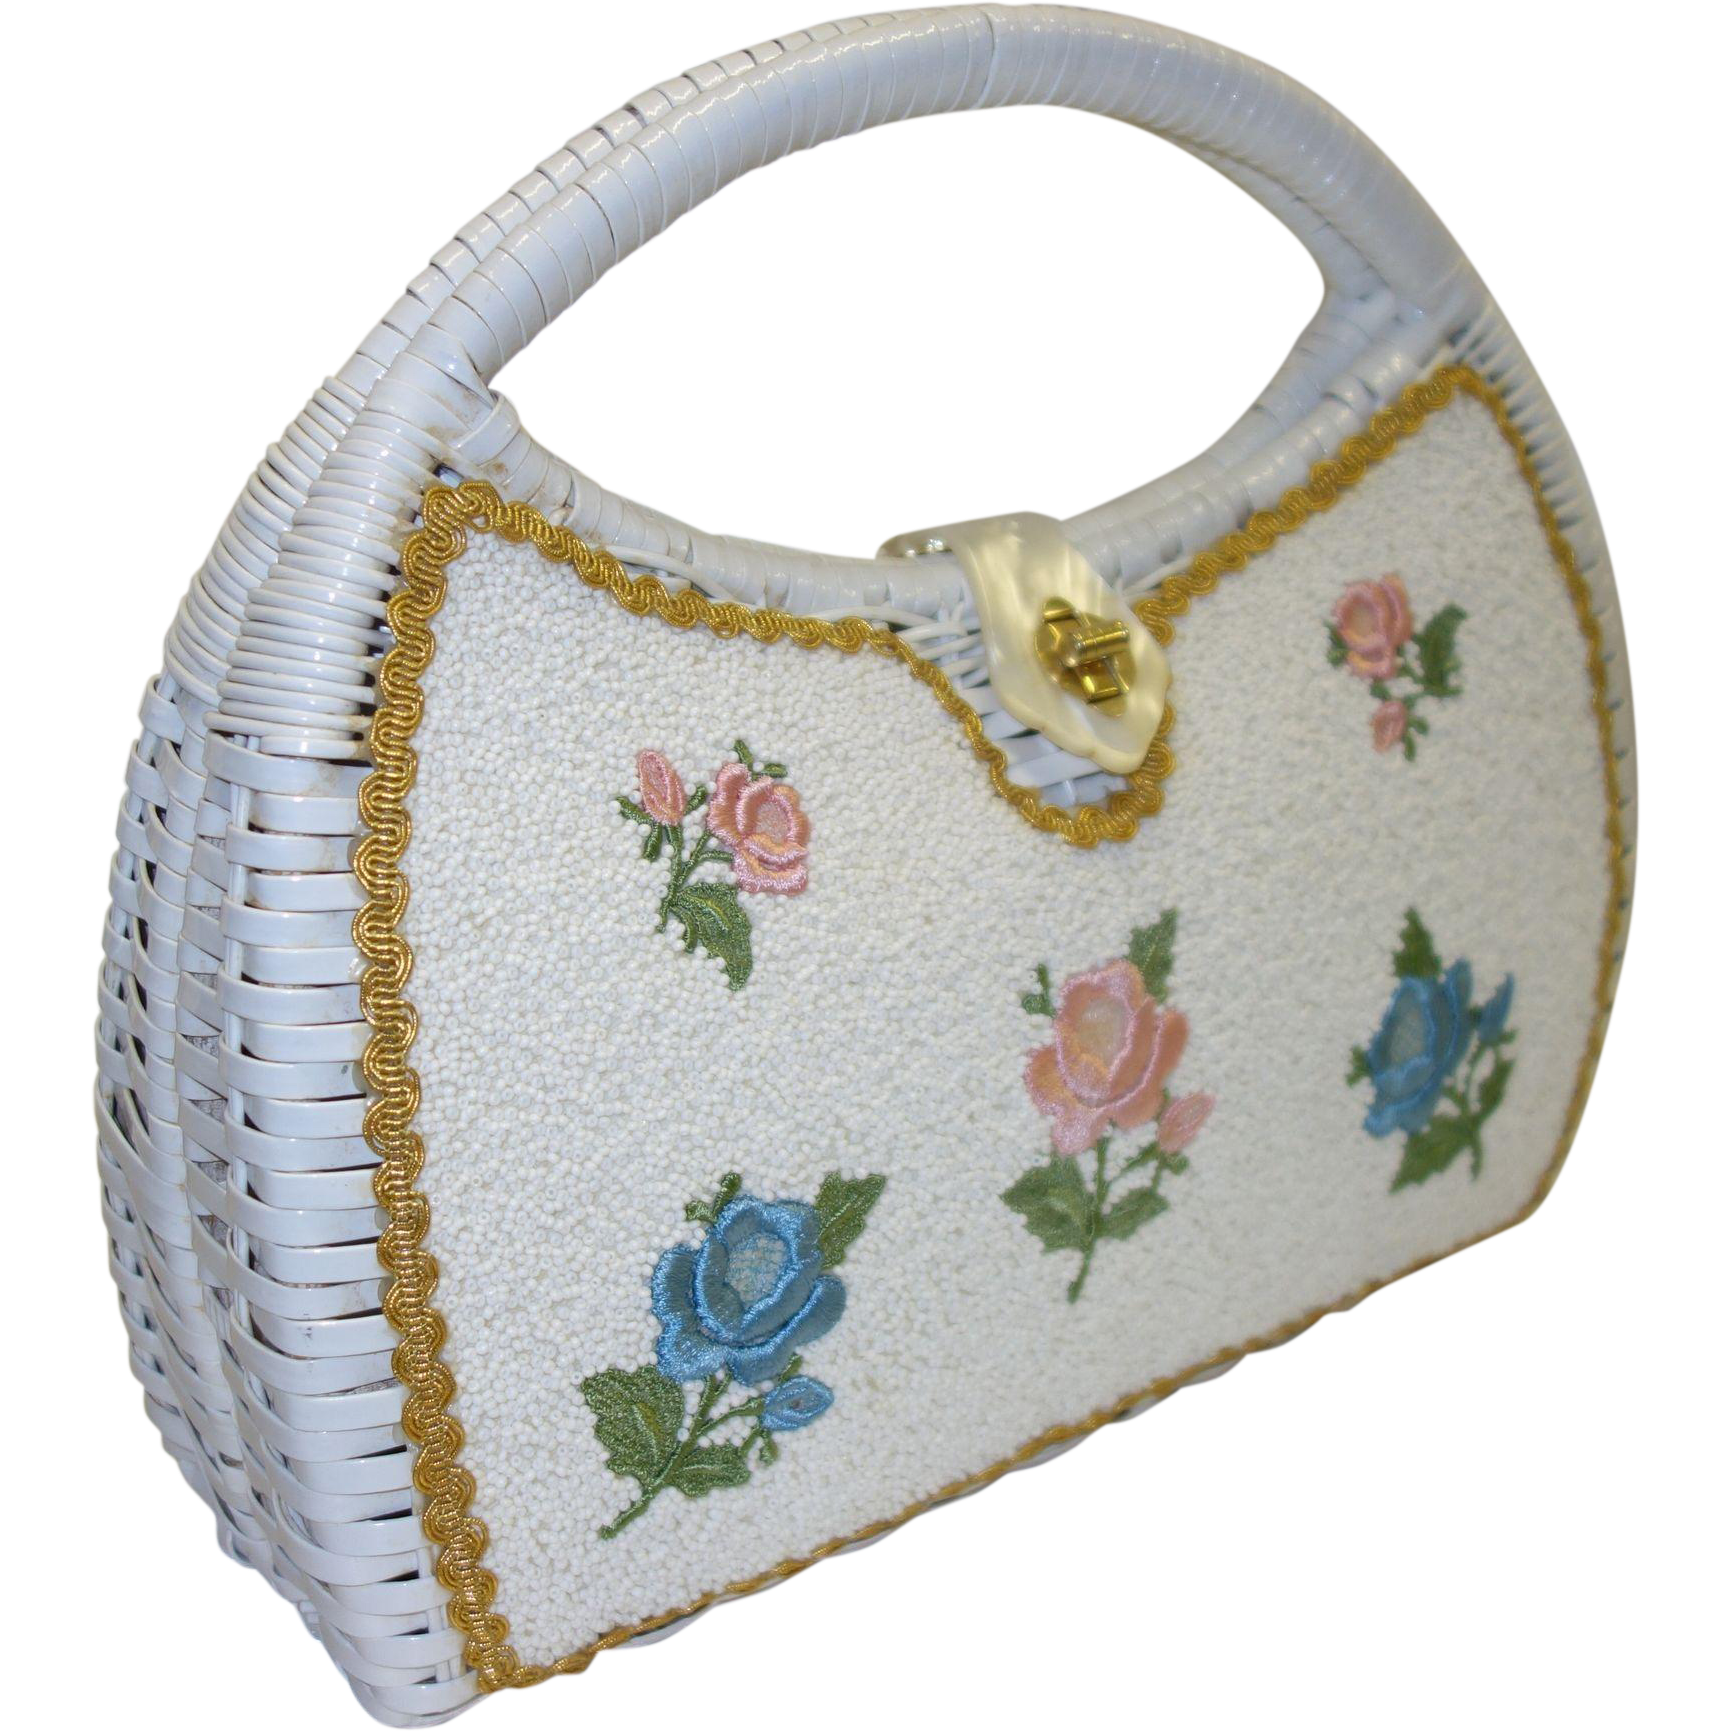 Handmade White Wicker Handbag with Beaded and Embroidered Floral Accents